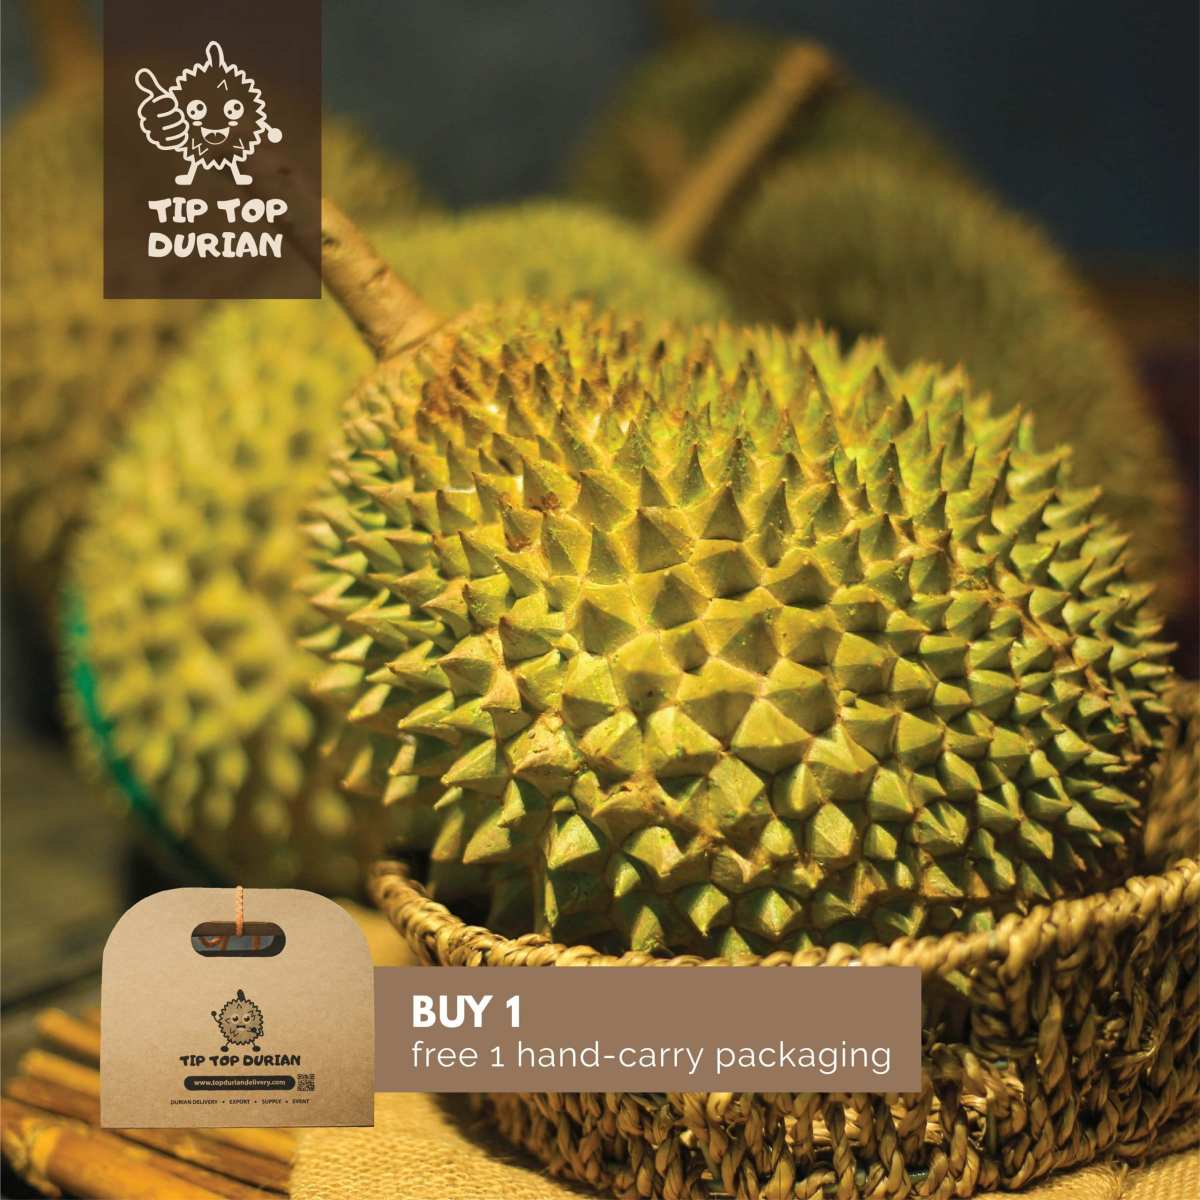 Musang King Premium with Hand Carry Box | Tip Top Durian Delivery | Malaysia Top Fresh Durian Online Delivery